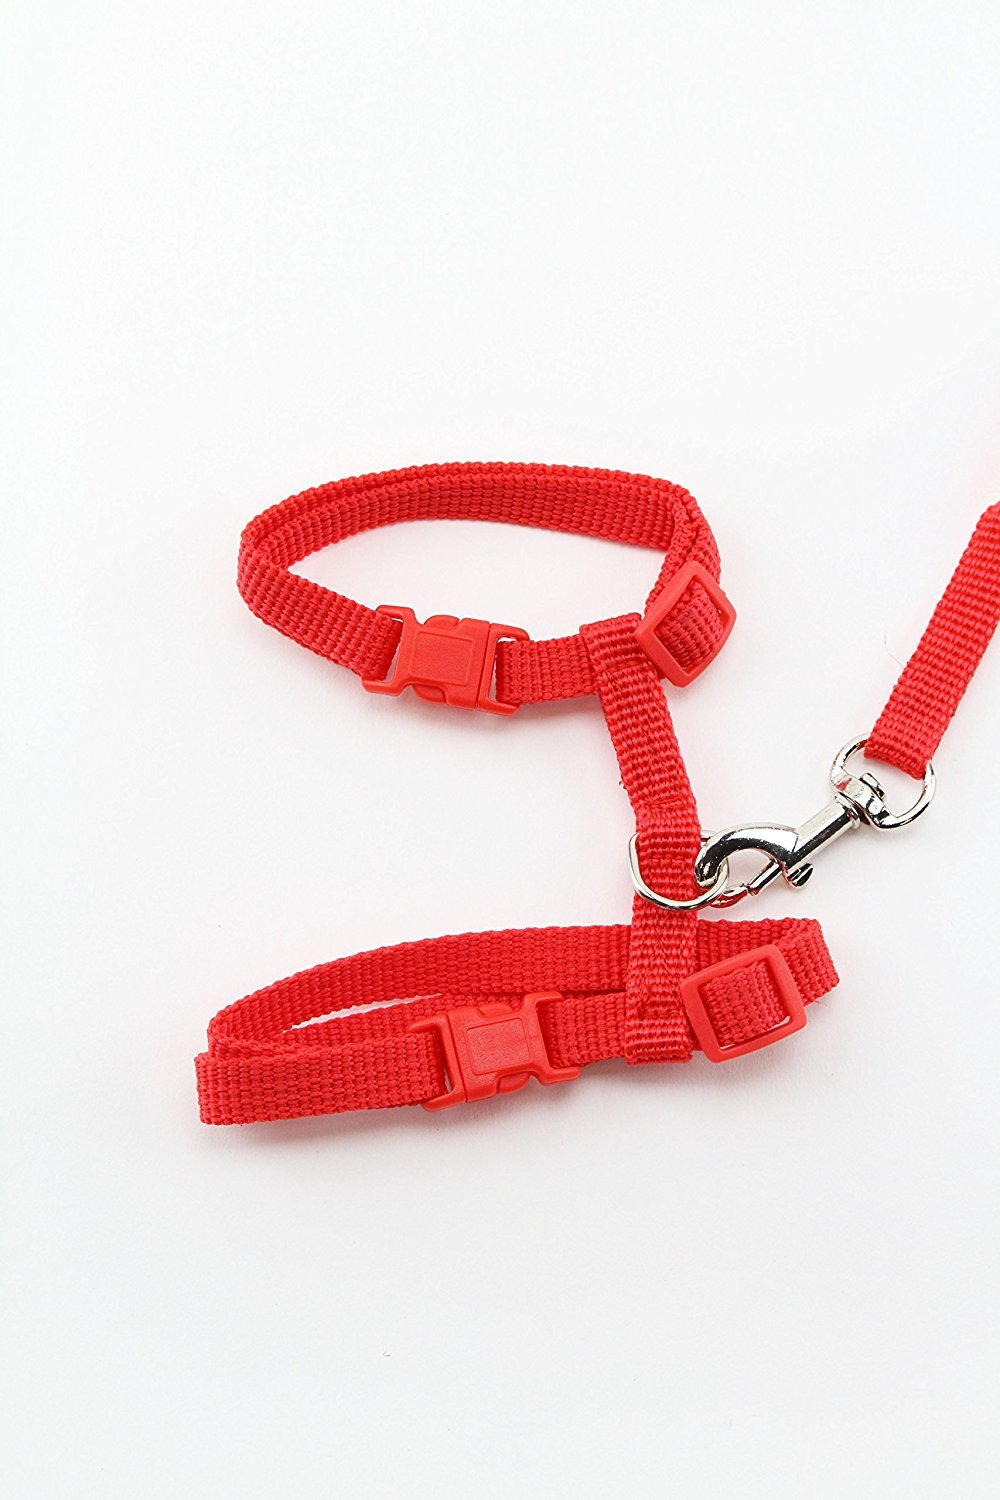 Red Midlee Adjustable Nylon Cat Harness & Leash by (Red)